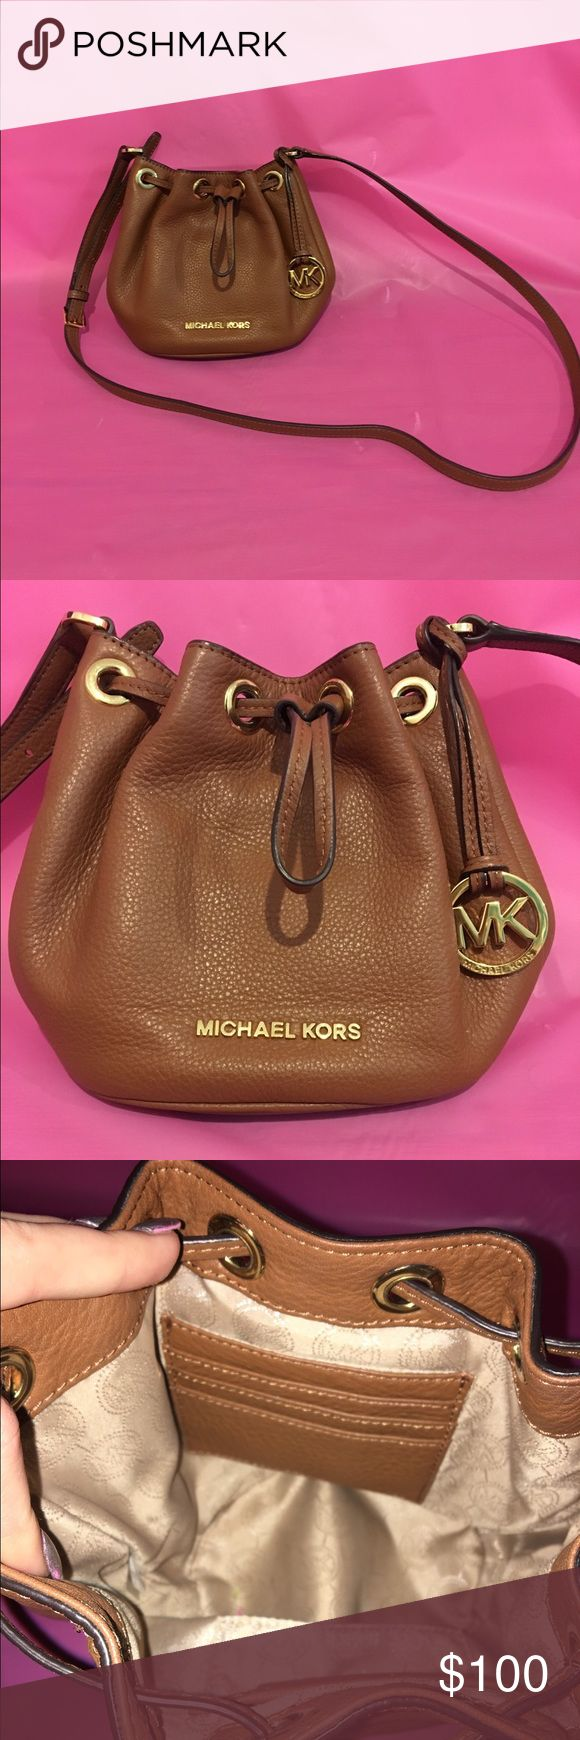 Brown Michael Kors Bucket bag Small brown leather bucket bag Michael Kors Bags Crossbody Bags